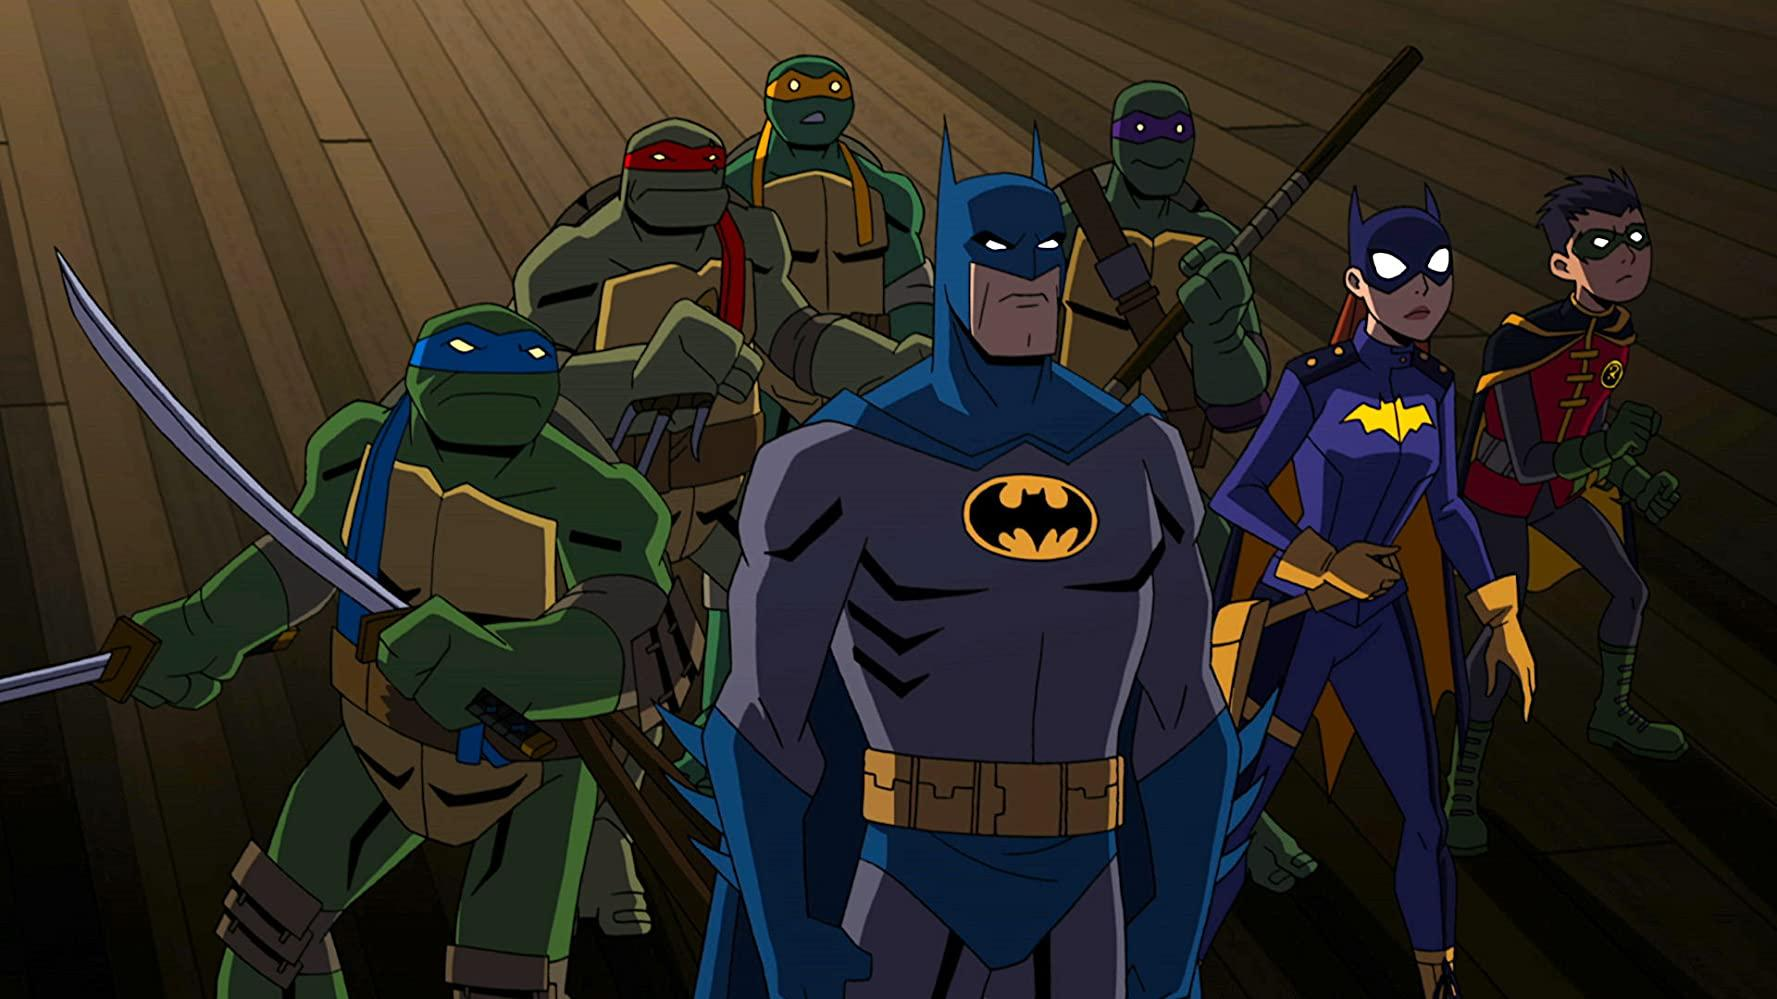 مشاهدة فيلم Batman vs. Teenage Mutant Ninja Turtles (2019) مترجم HD اون لاين